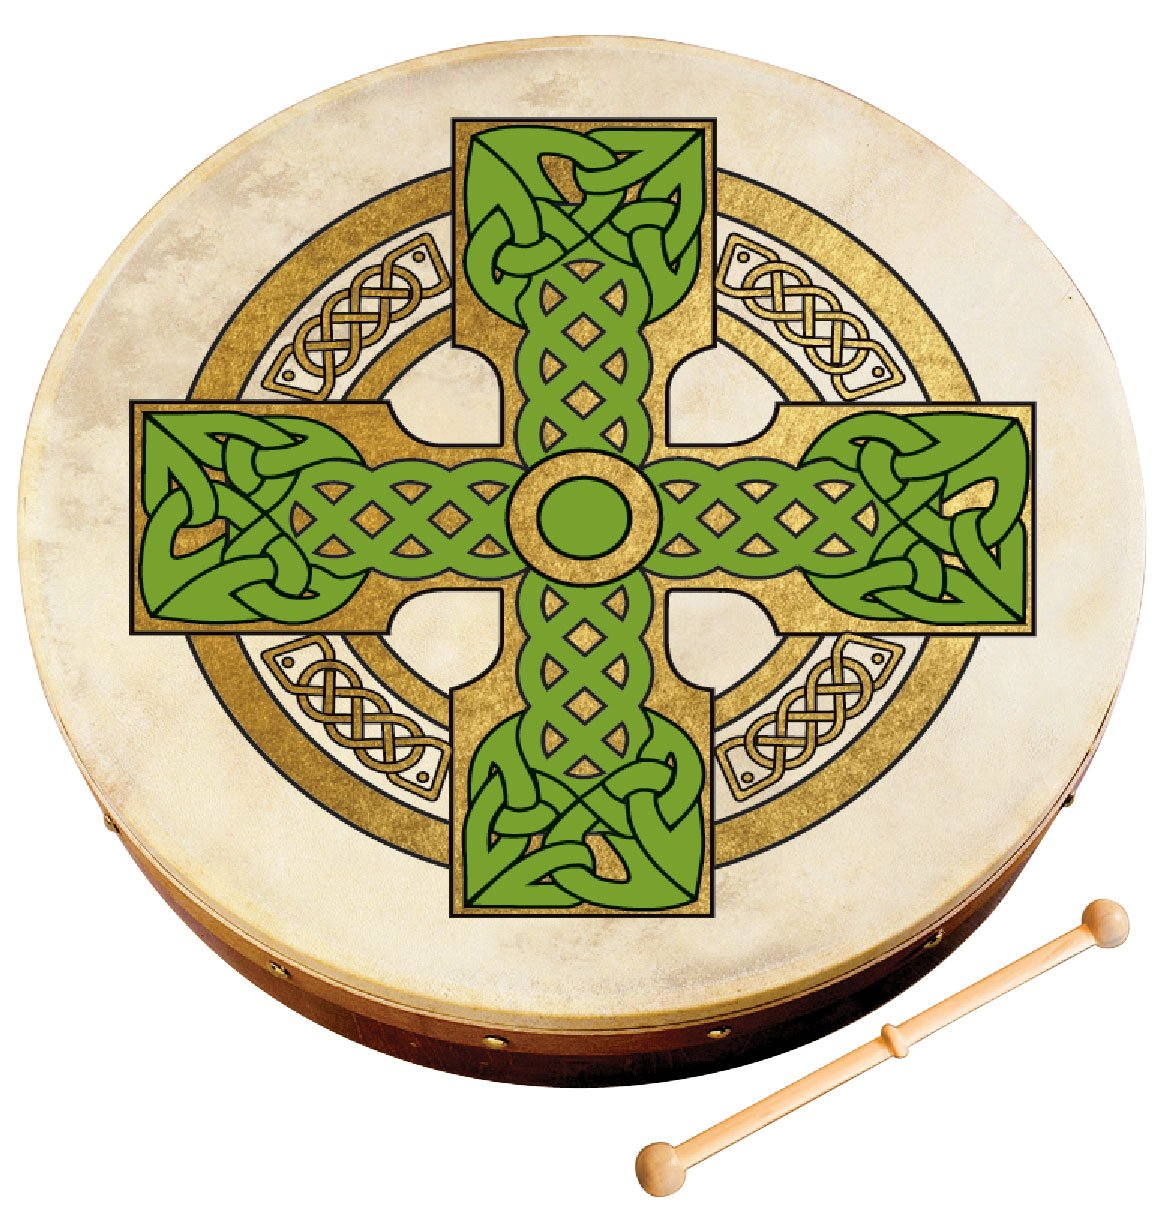 Waltons Bodhrán 12'' (Cloghan Cross) - Handcrafted Irish Instrument - Crisp & Musical Tone - Hardwood Beater Included w/ Purchase